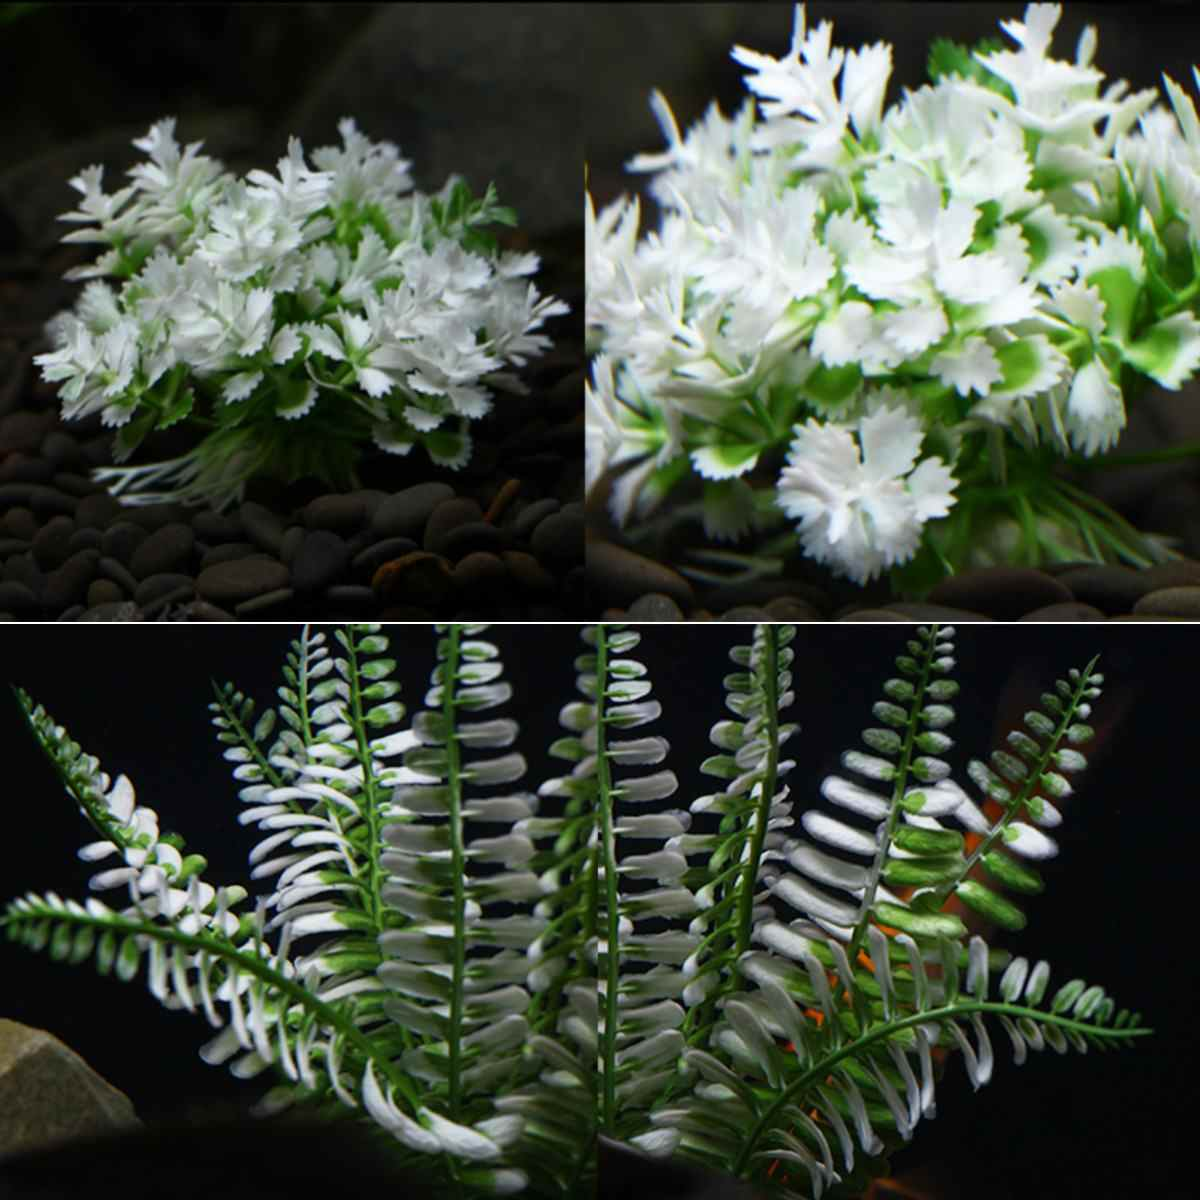 Plastic Artificial Underwater Plants Aquarium Fish Tank Decoration Green Water Grass White Leaf Crown Grass Viewing Decorations